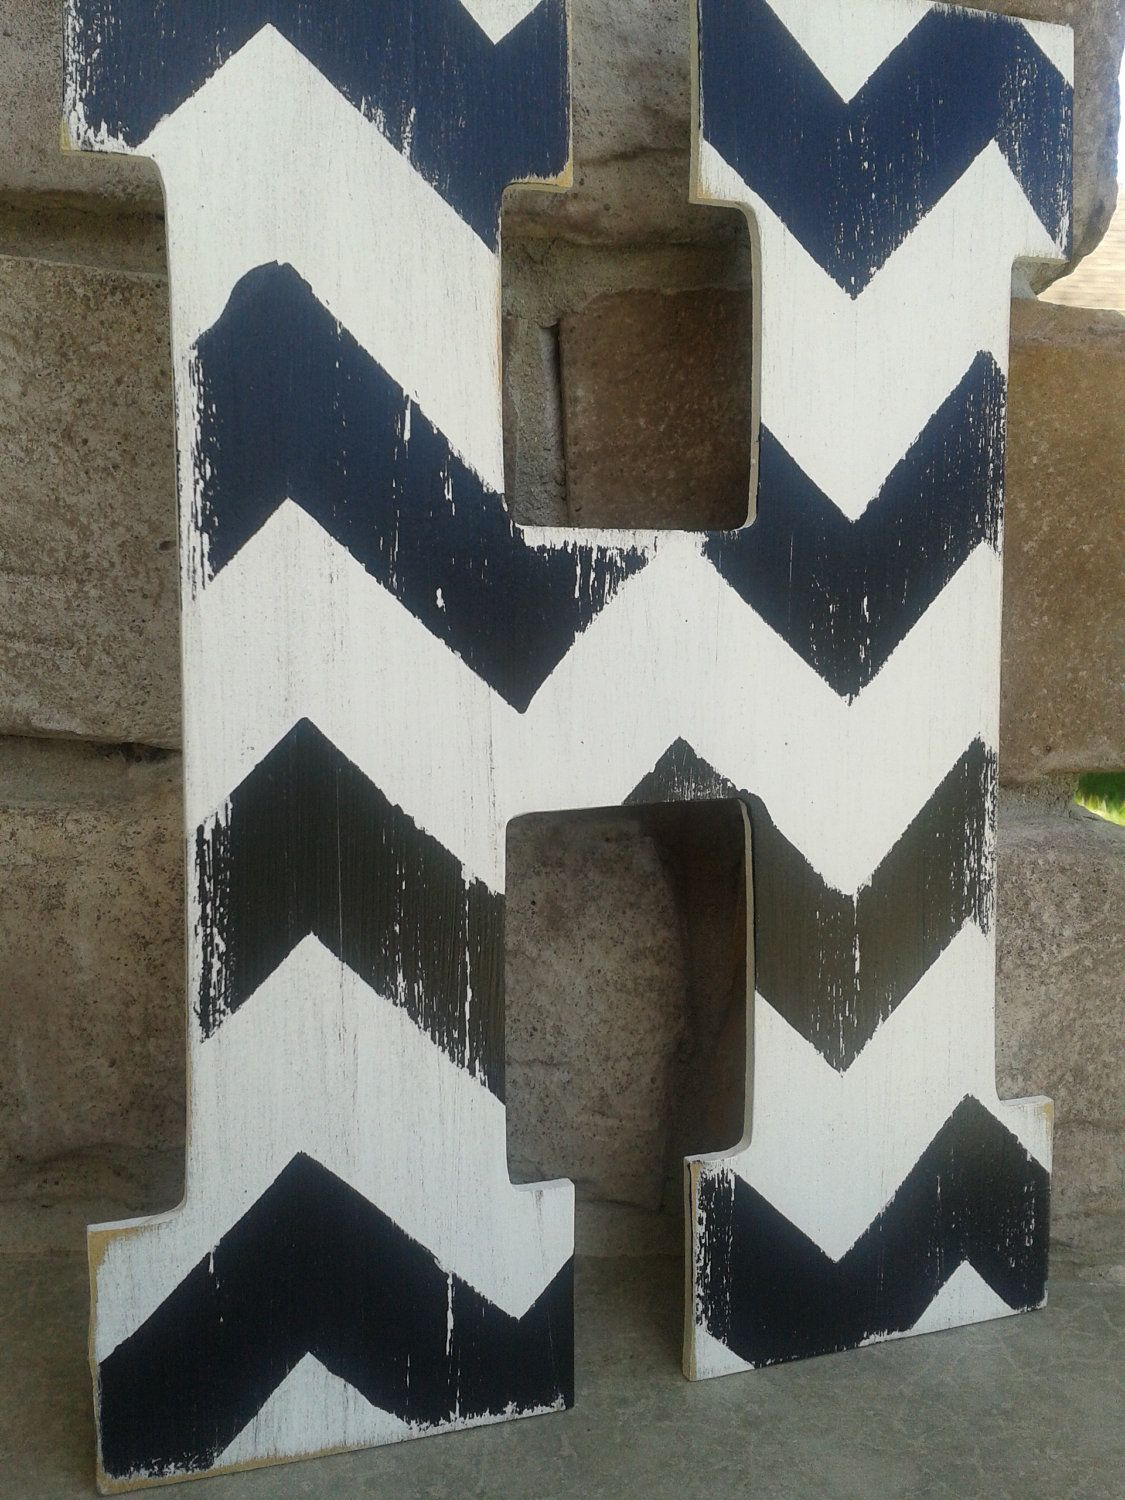 Chevron Letters Bridesmaids Gifts Wedding Under 20 Custom Distressed Wood For Home Decor